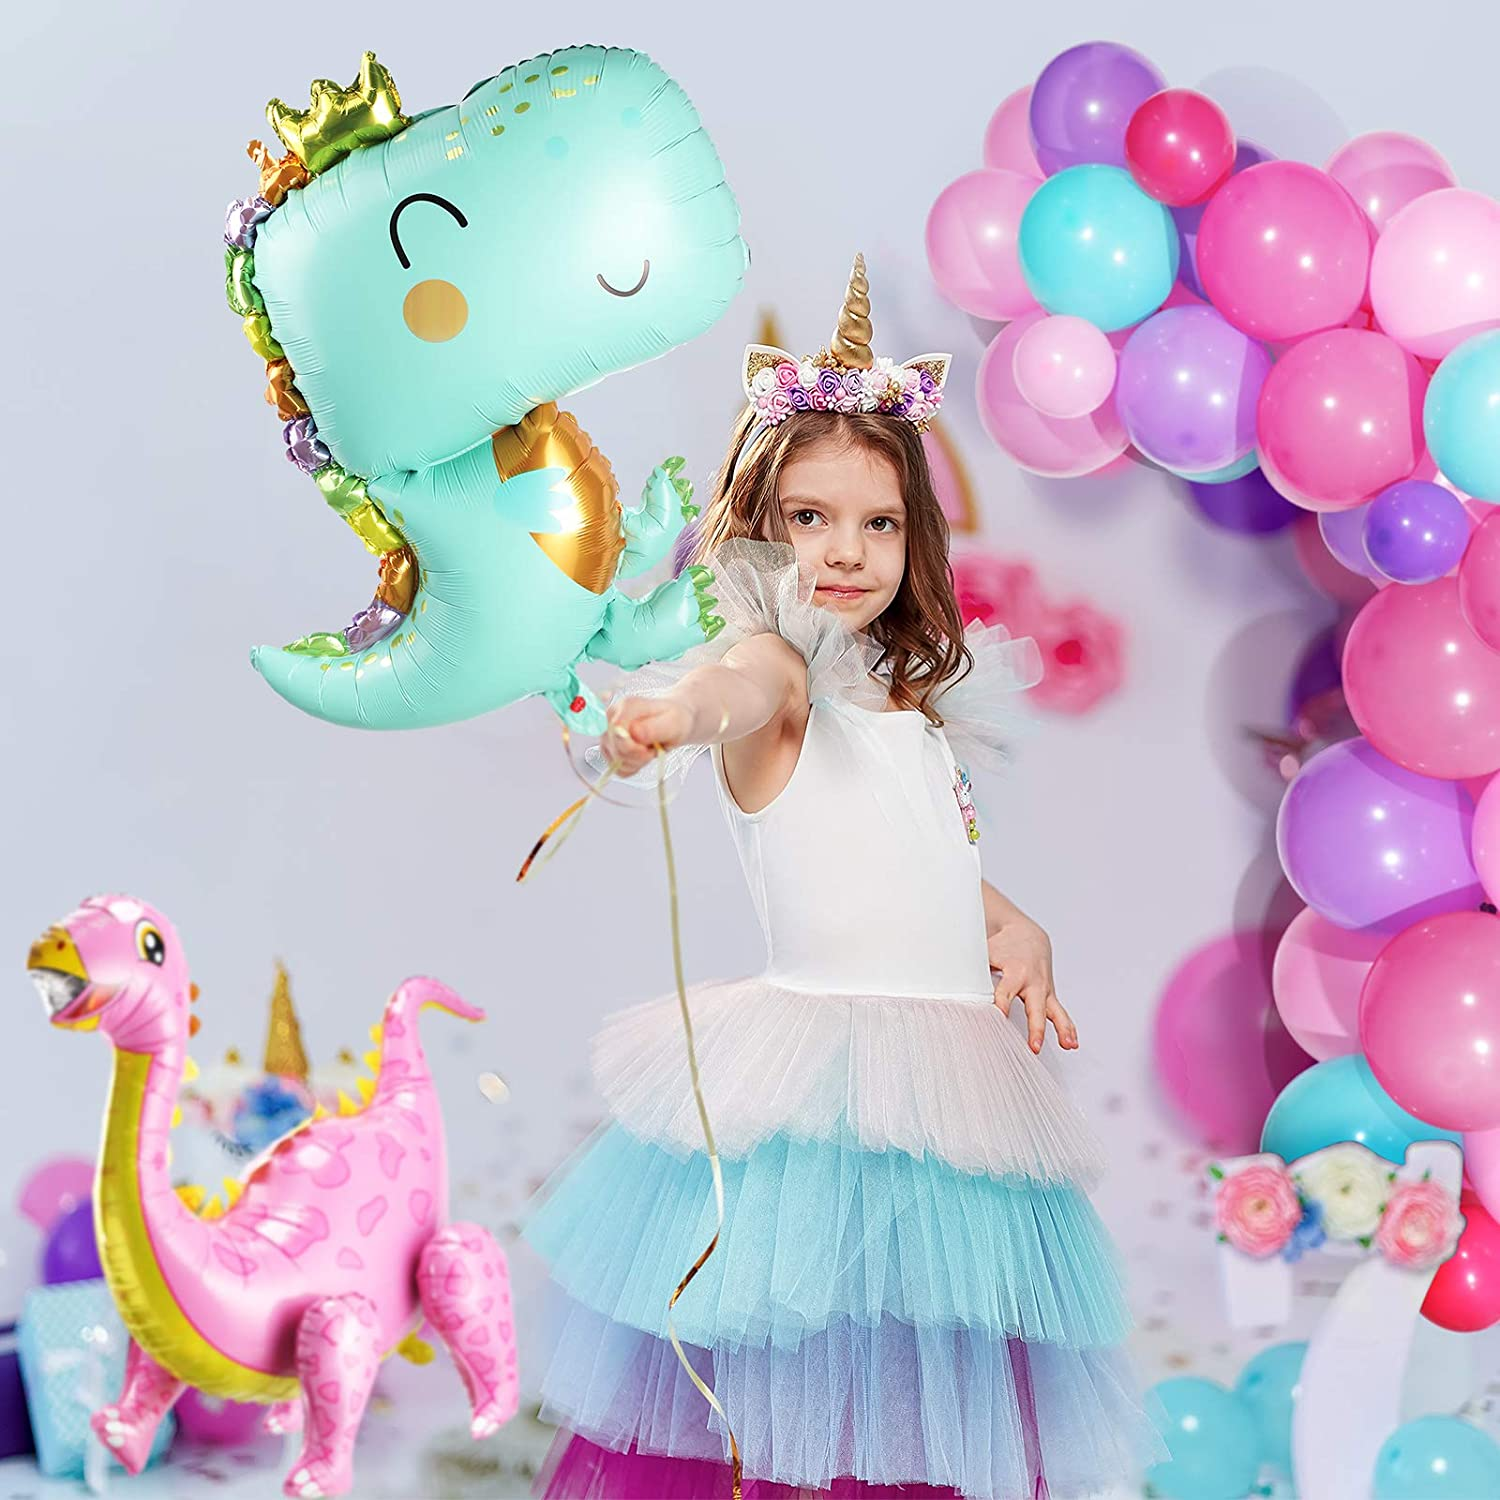 104 Pieces Dinosaur Party Decorations Jungle Themed Dinosaur Balloon Garland Kit with Foil Dinosaur Standing Balloons for Boys Girls Dinosaur Birthday Party Supplies